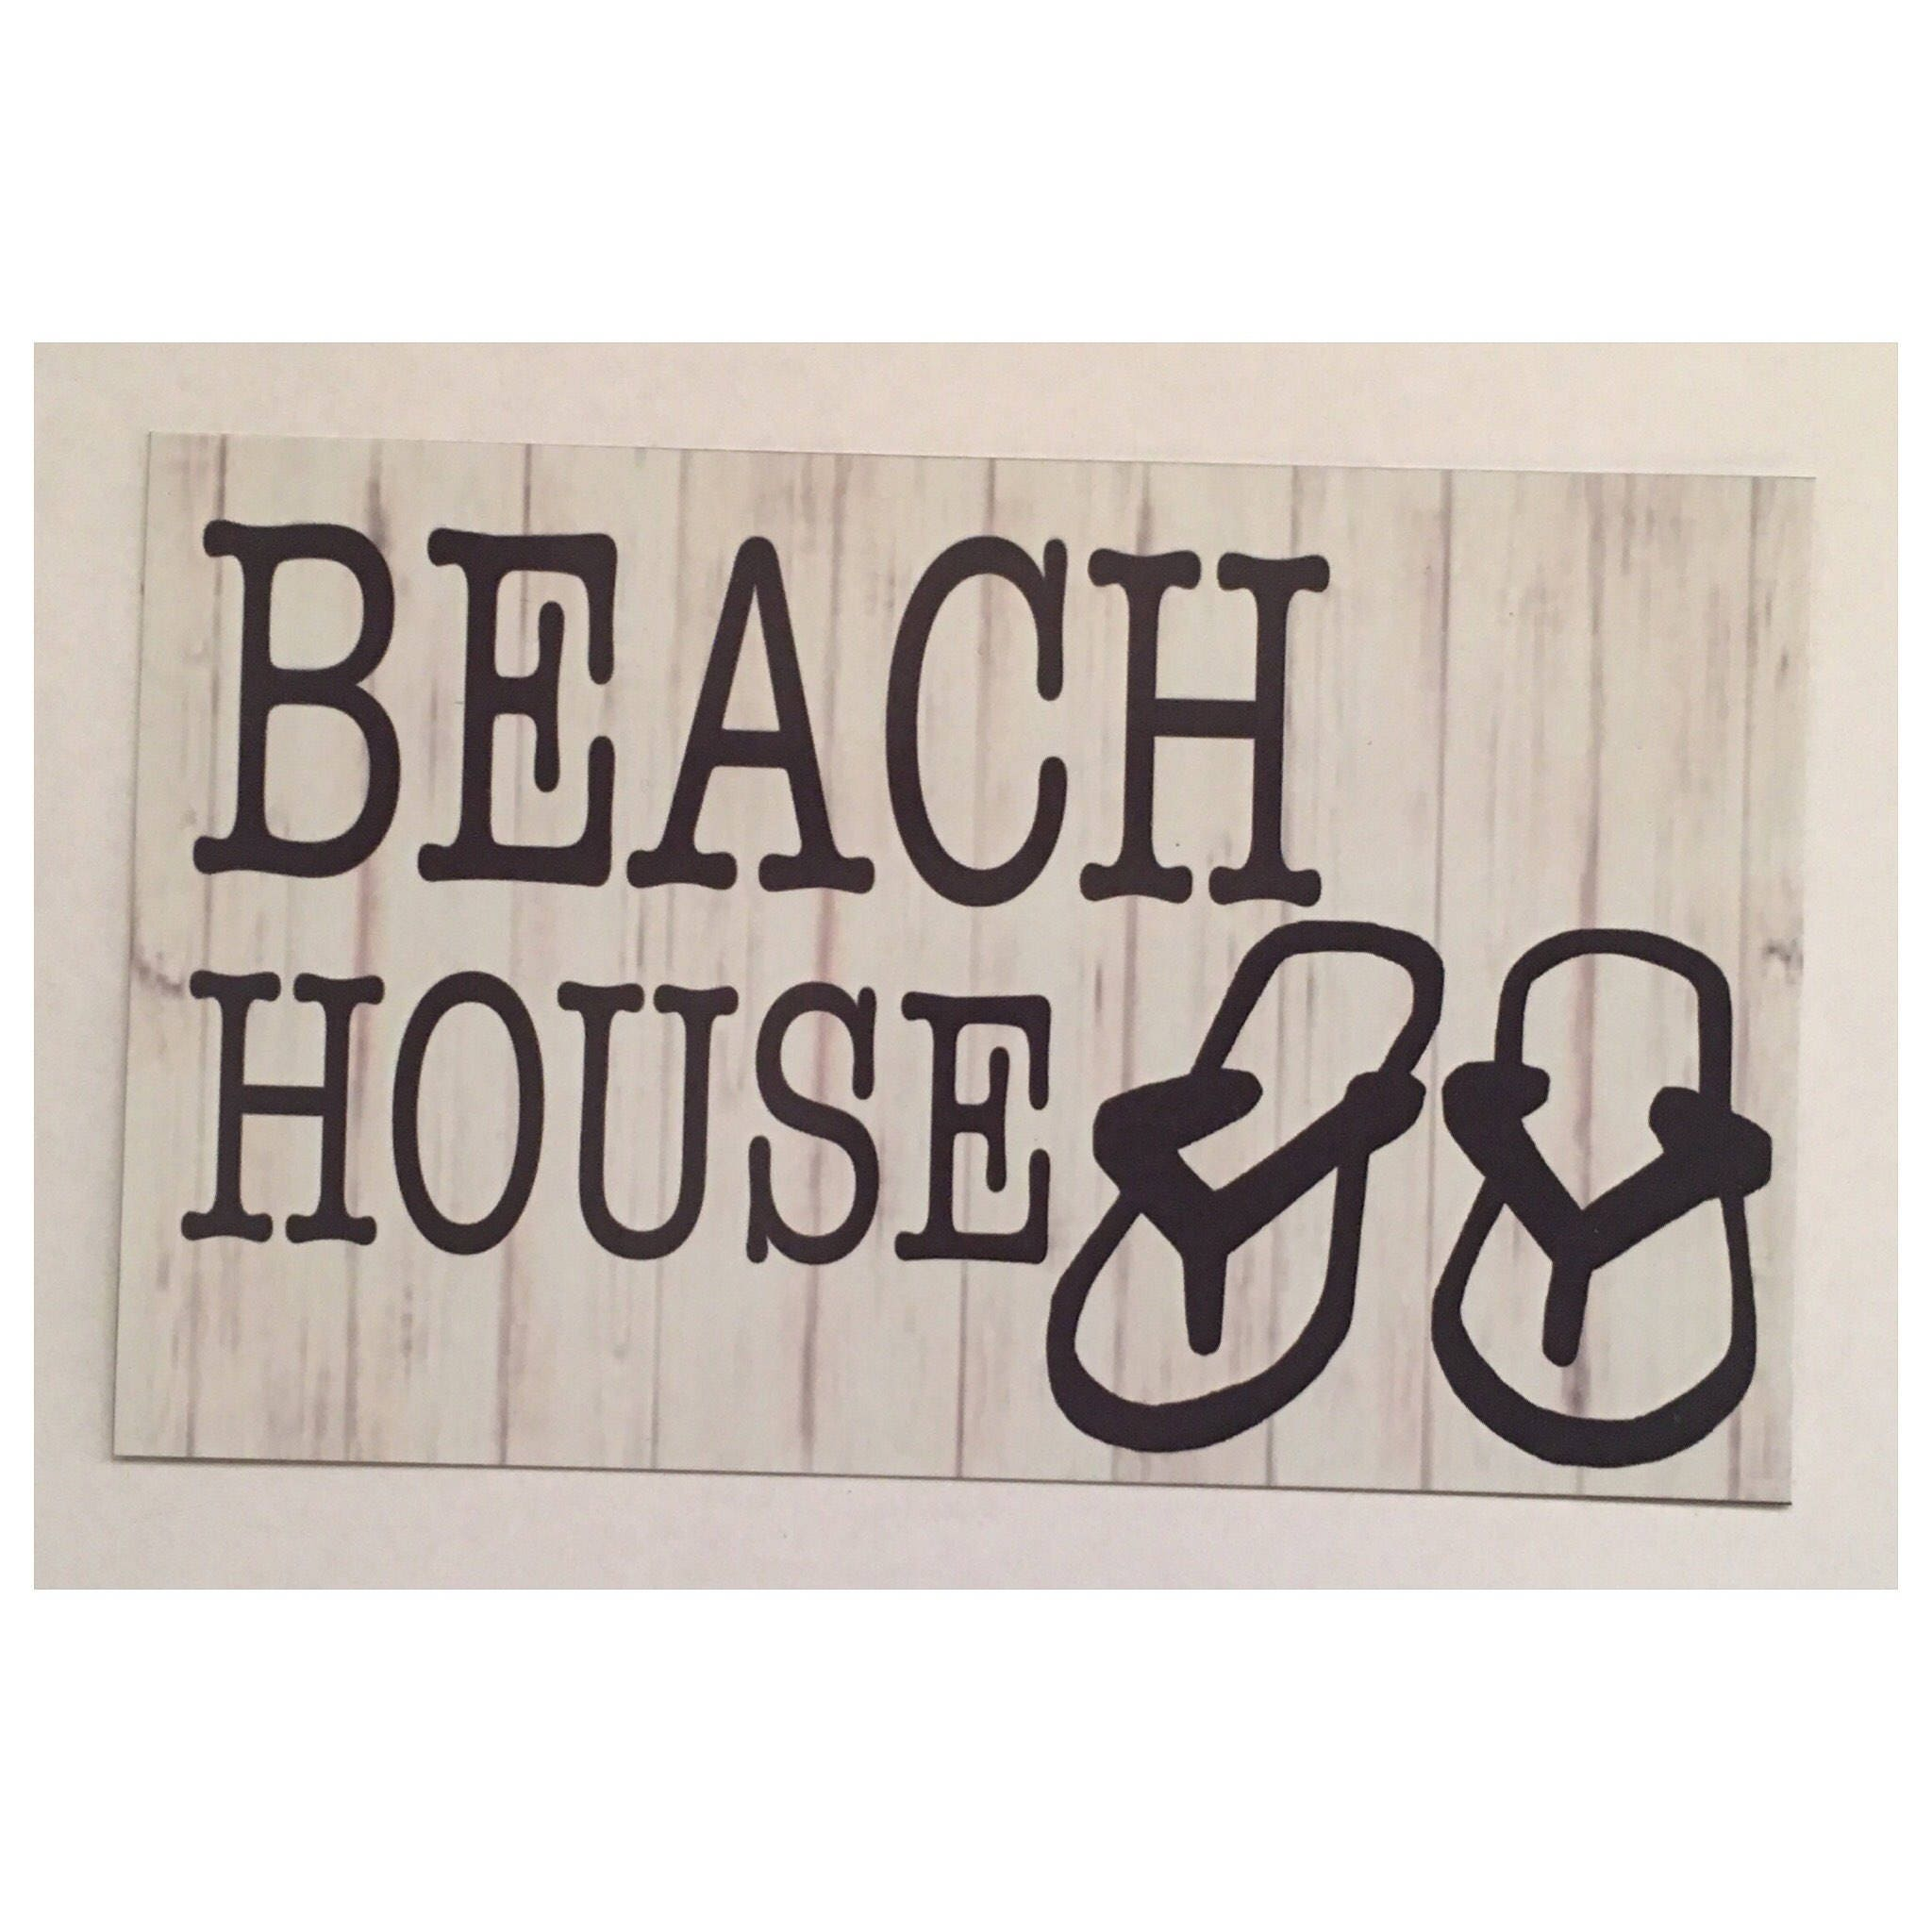 Welcome To Our Beach House Sign: Welcome To Our Beach House Sign Surfer Beach House Board